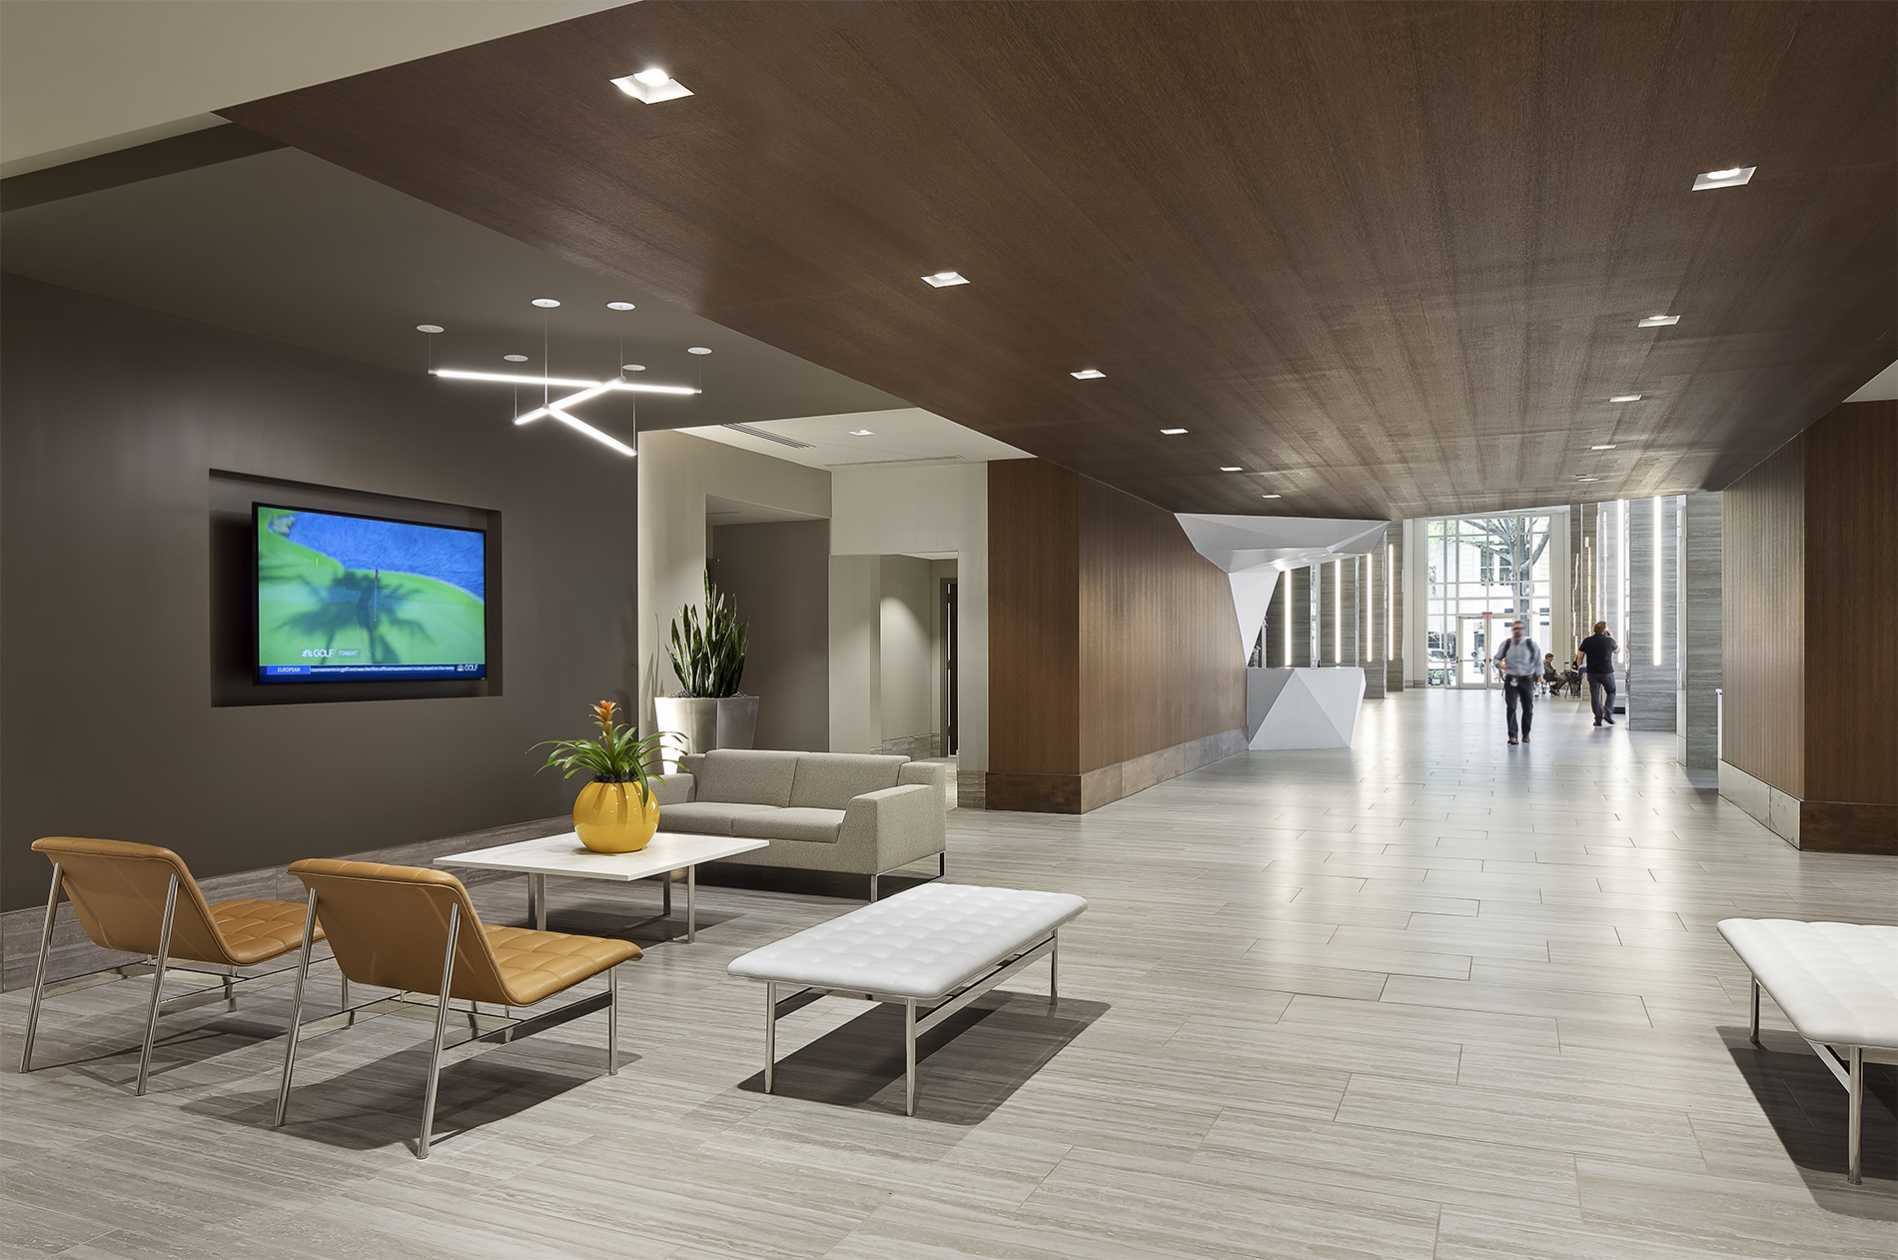 South Carolina Architects, DP3 project for Wells Fargo - 5